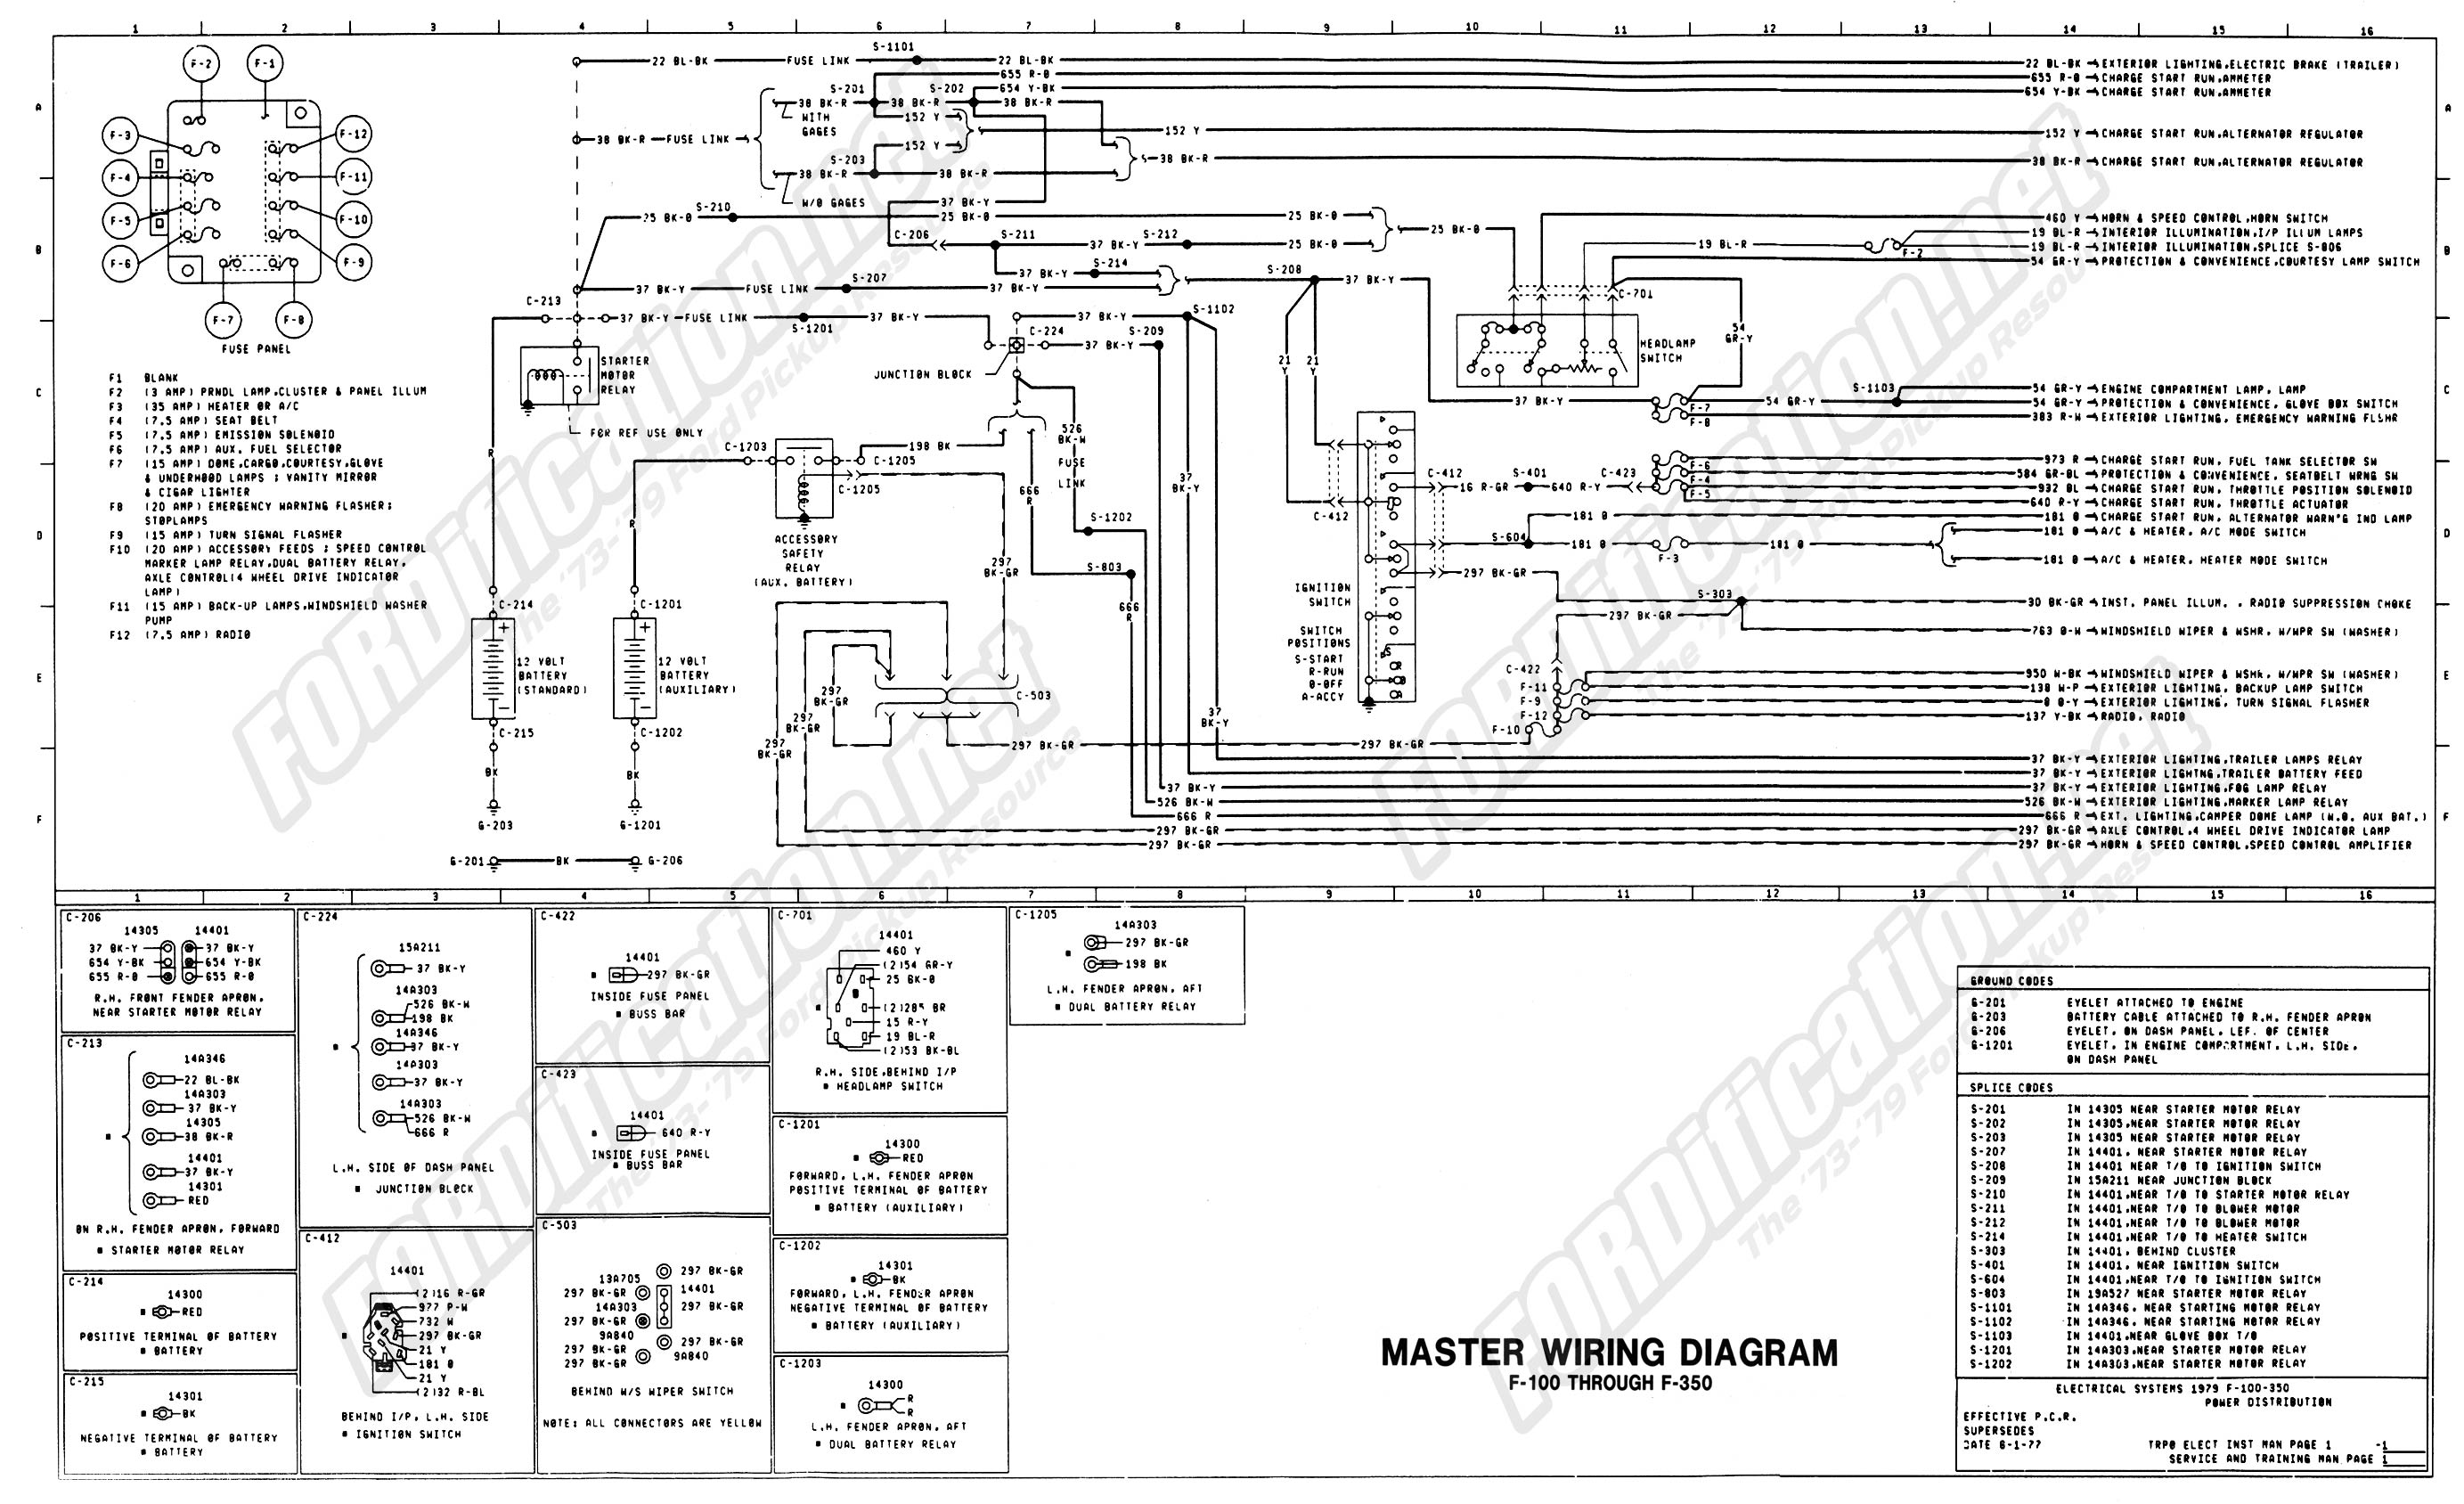 1973 1979 ford truck wiring diagrams schematics fordification net rh fordification net 1979 ford f100 wiring diagram 79 ford f150 wiring diagram